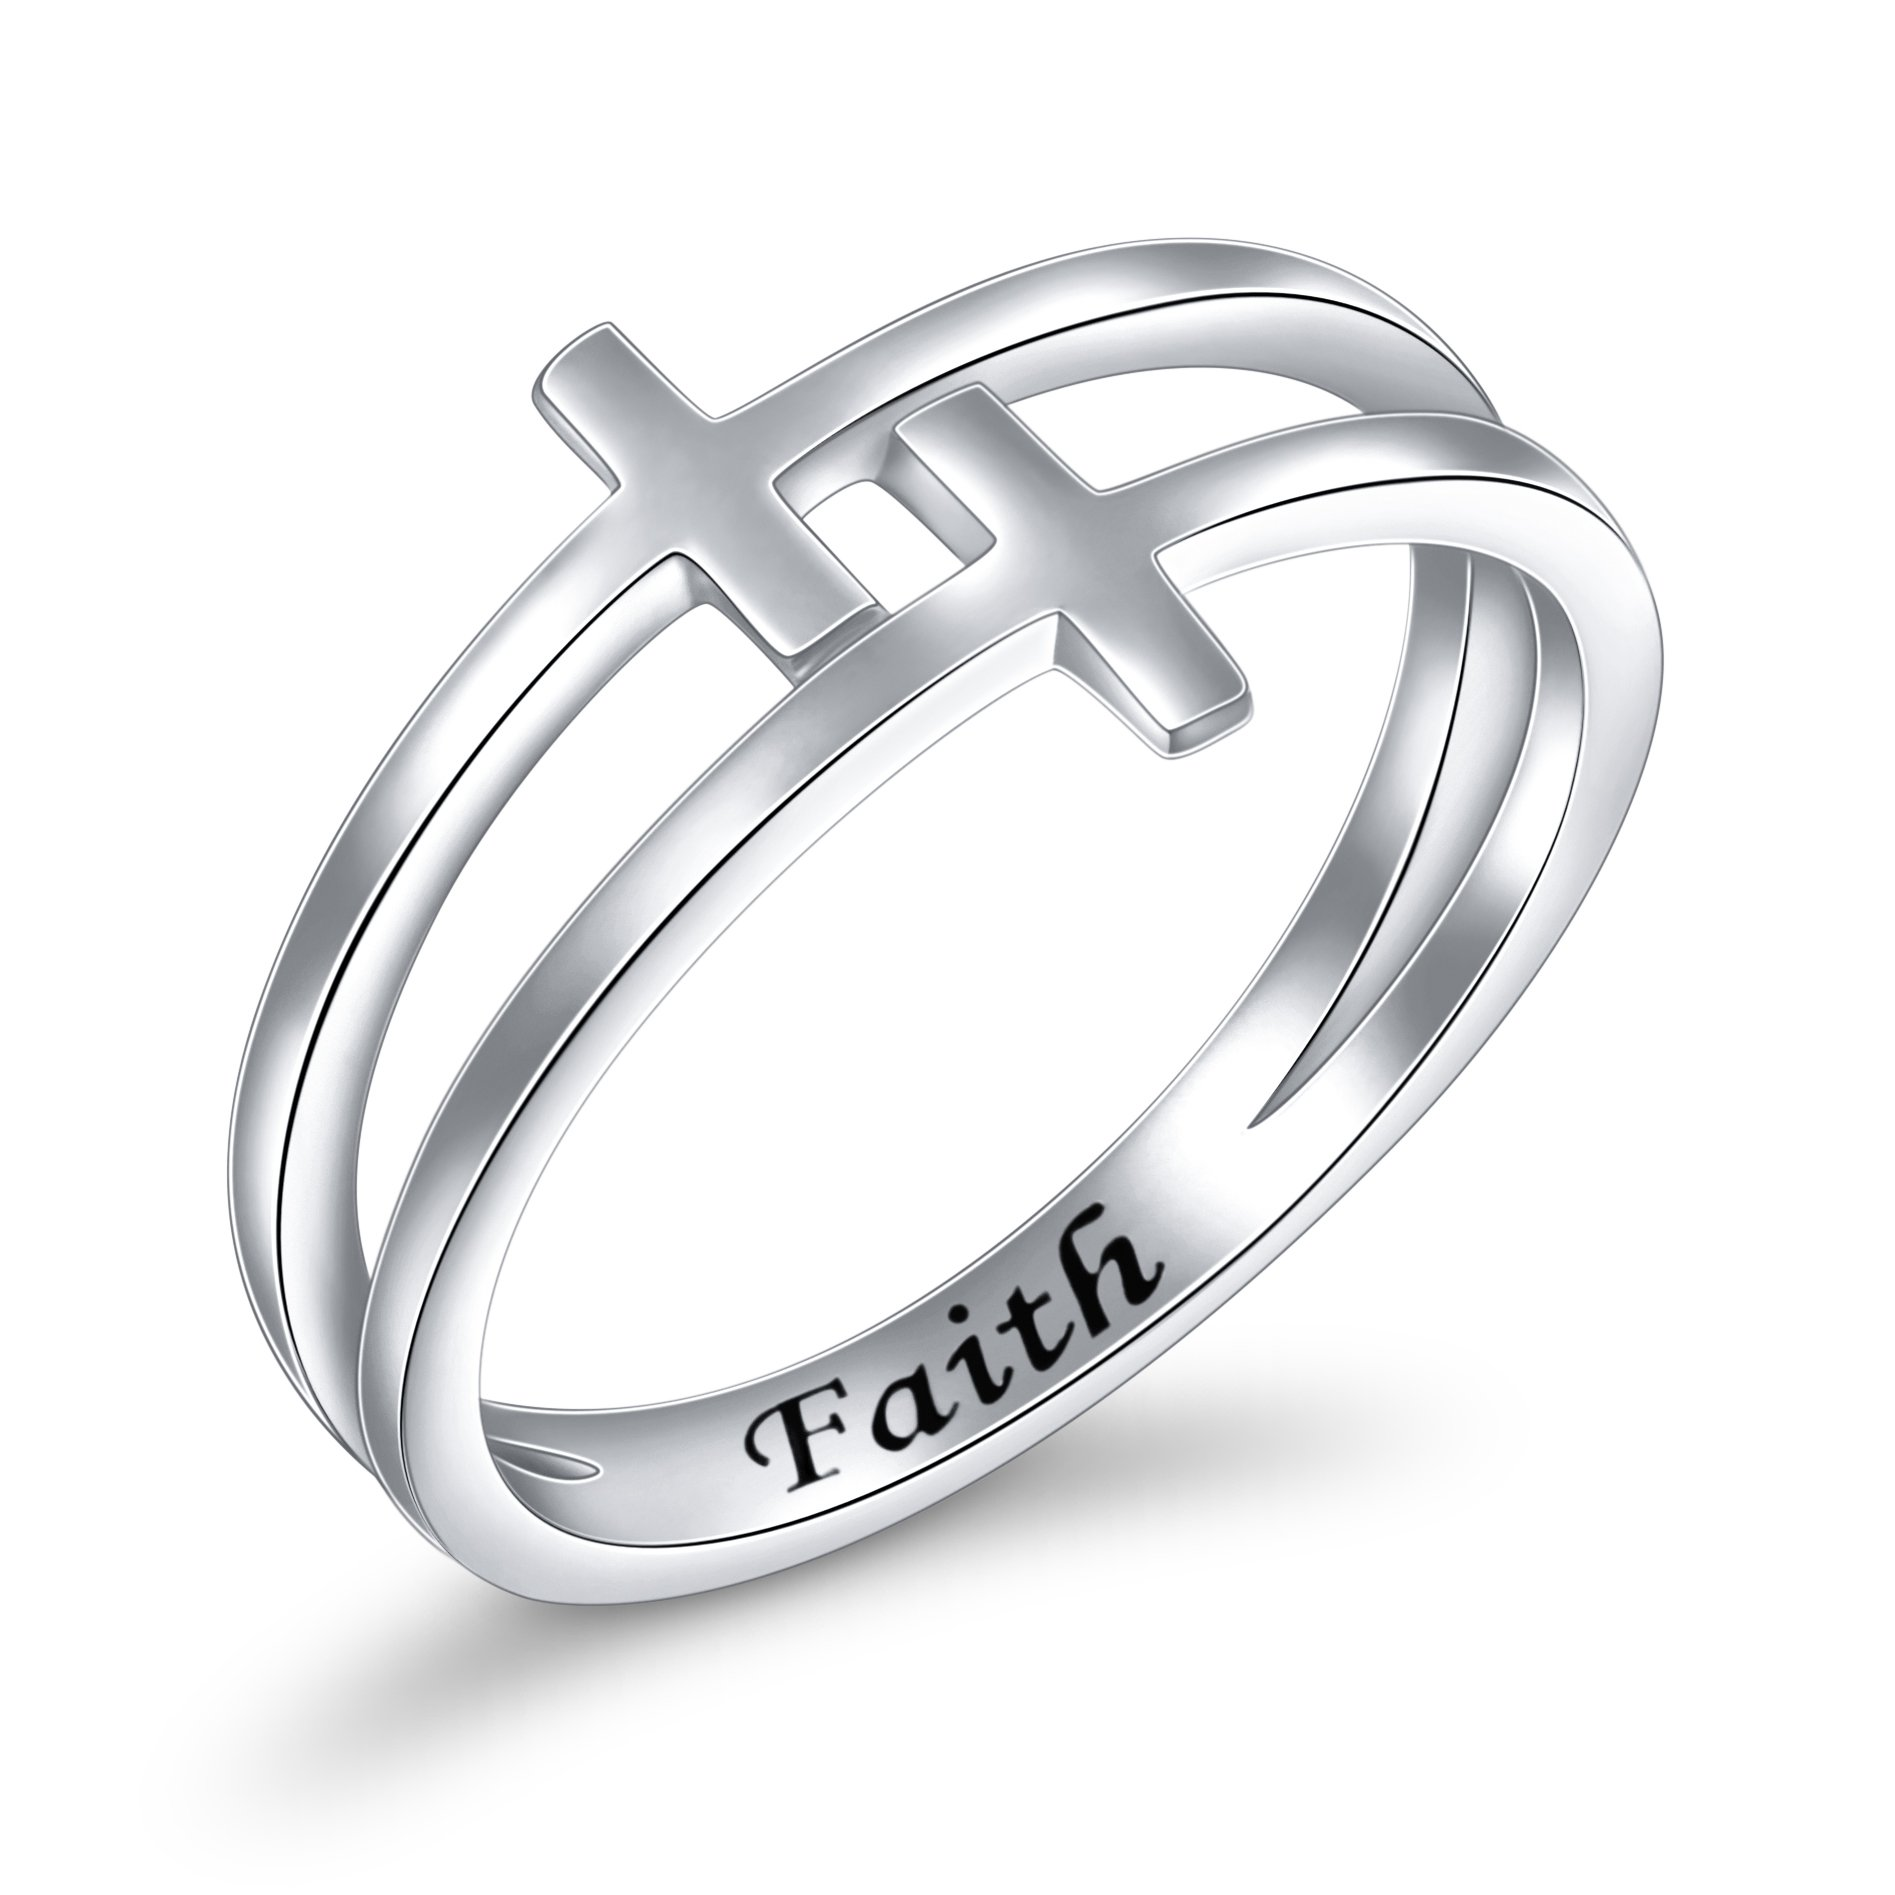 Inspirational Jewelry Sterling Silver Engraved Faith Double Cross Ring Christian Fashion Wedding Engagement Band, Size 6-8 (7)